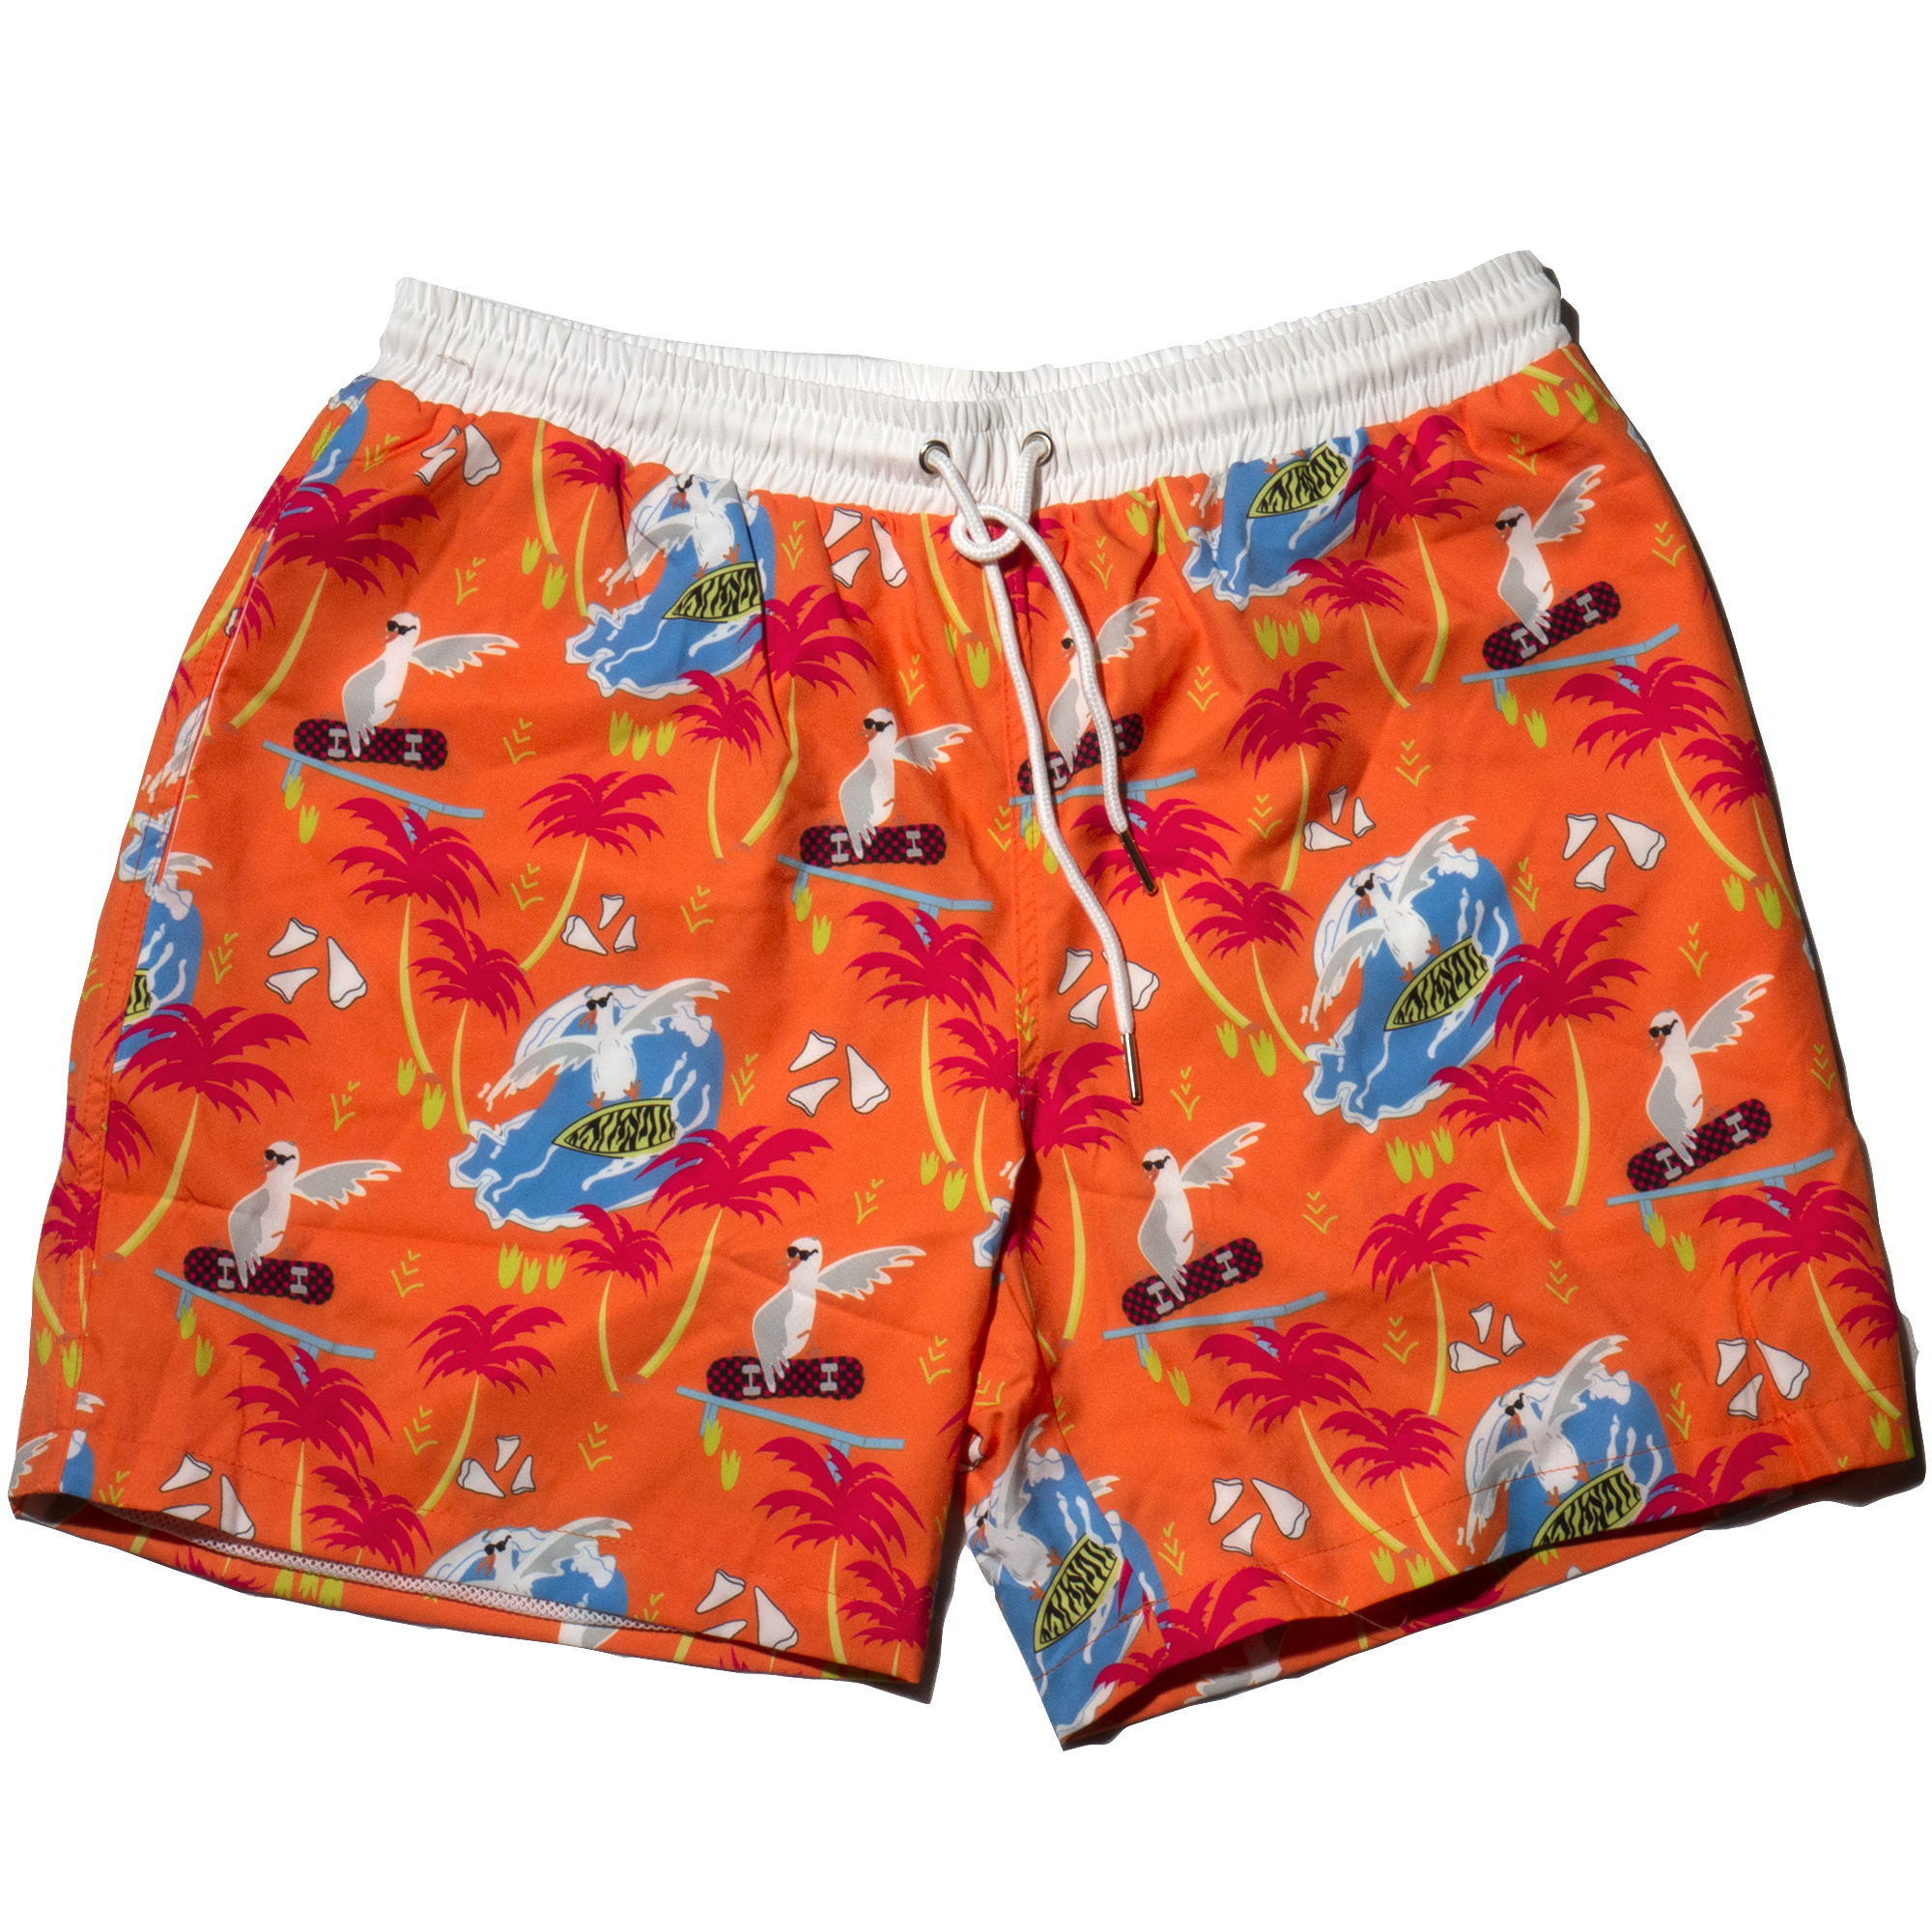 Surfin' Birds Retro Vintage Swim Trunks